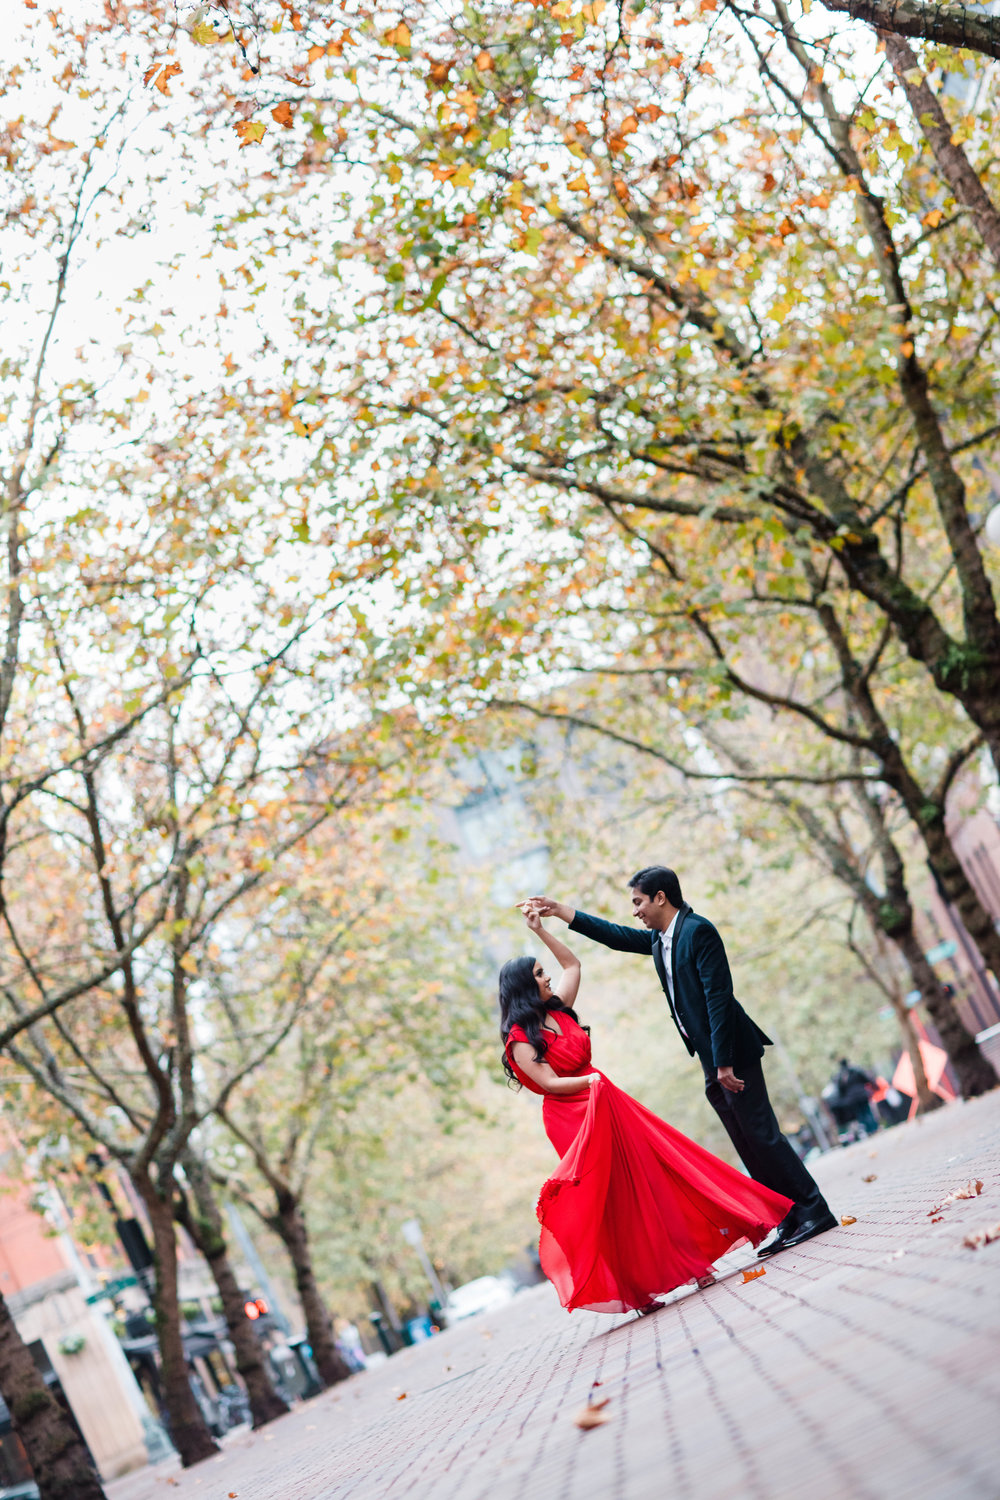 Sushat+Nancy_Engagement_Pioneer+Square_Sculpture+Park_Seattle_Oct2016_APW160.jpg